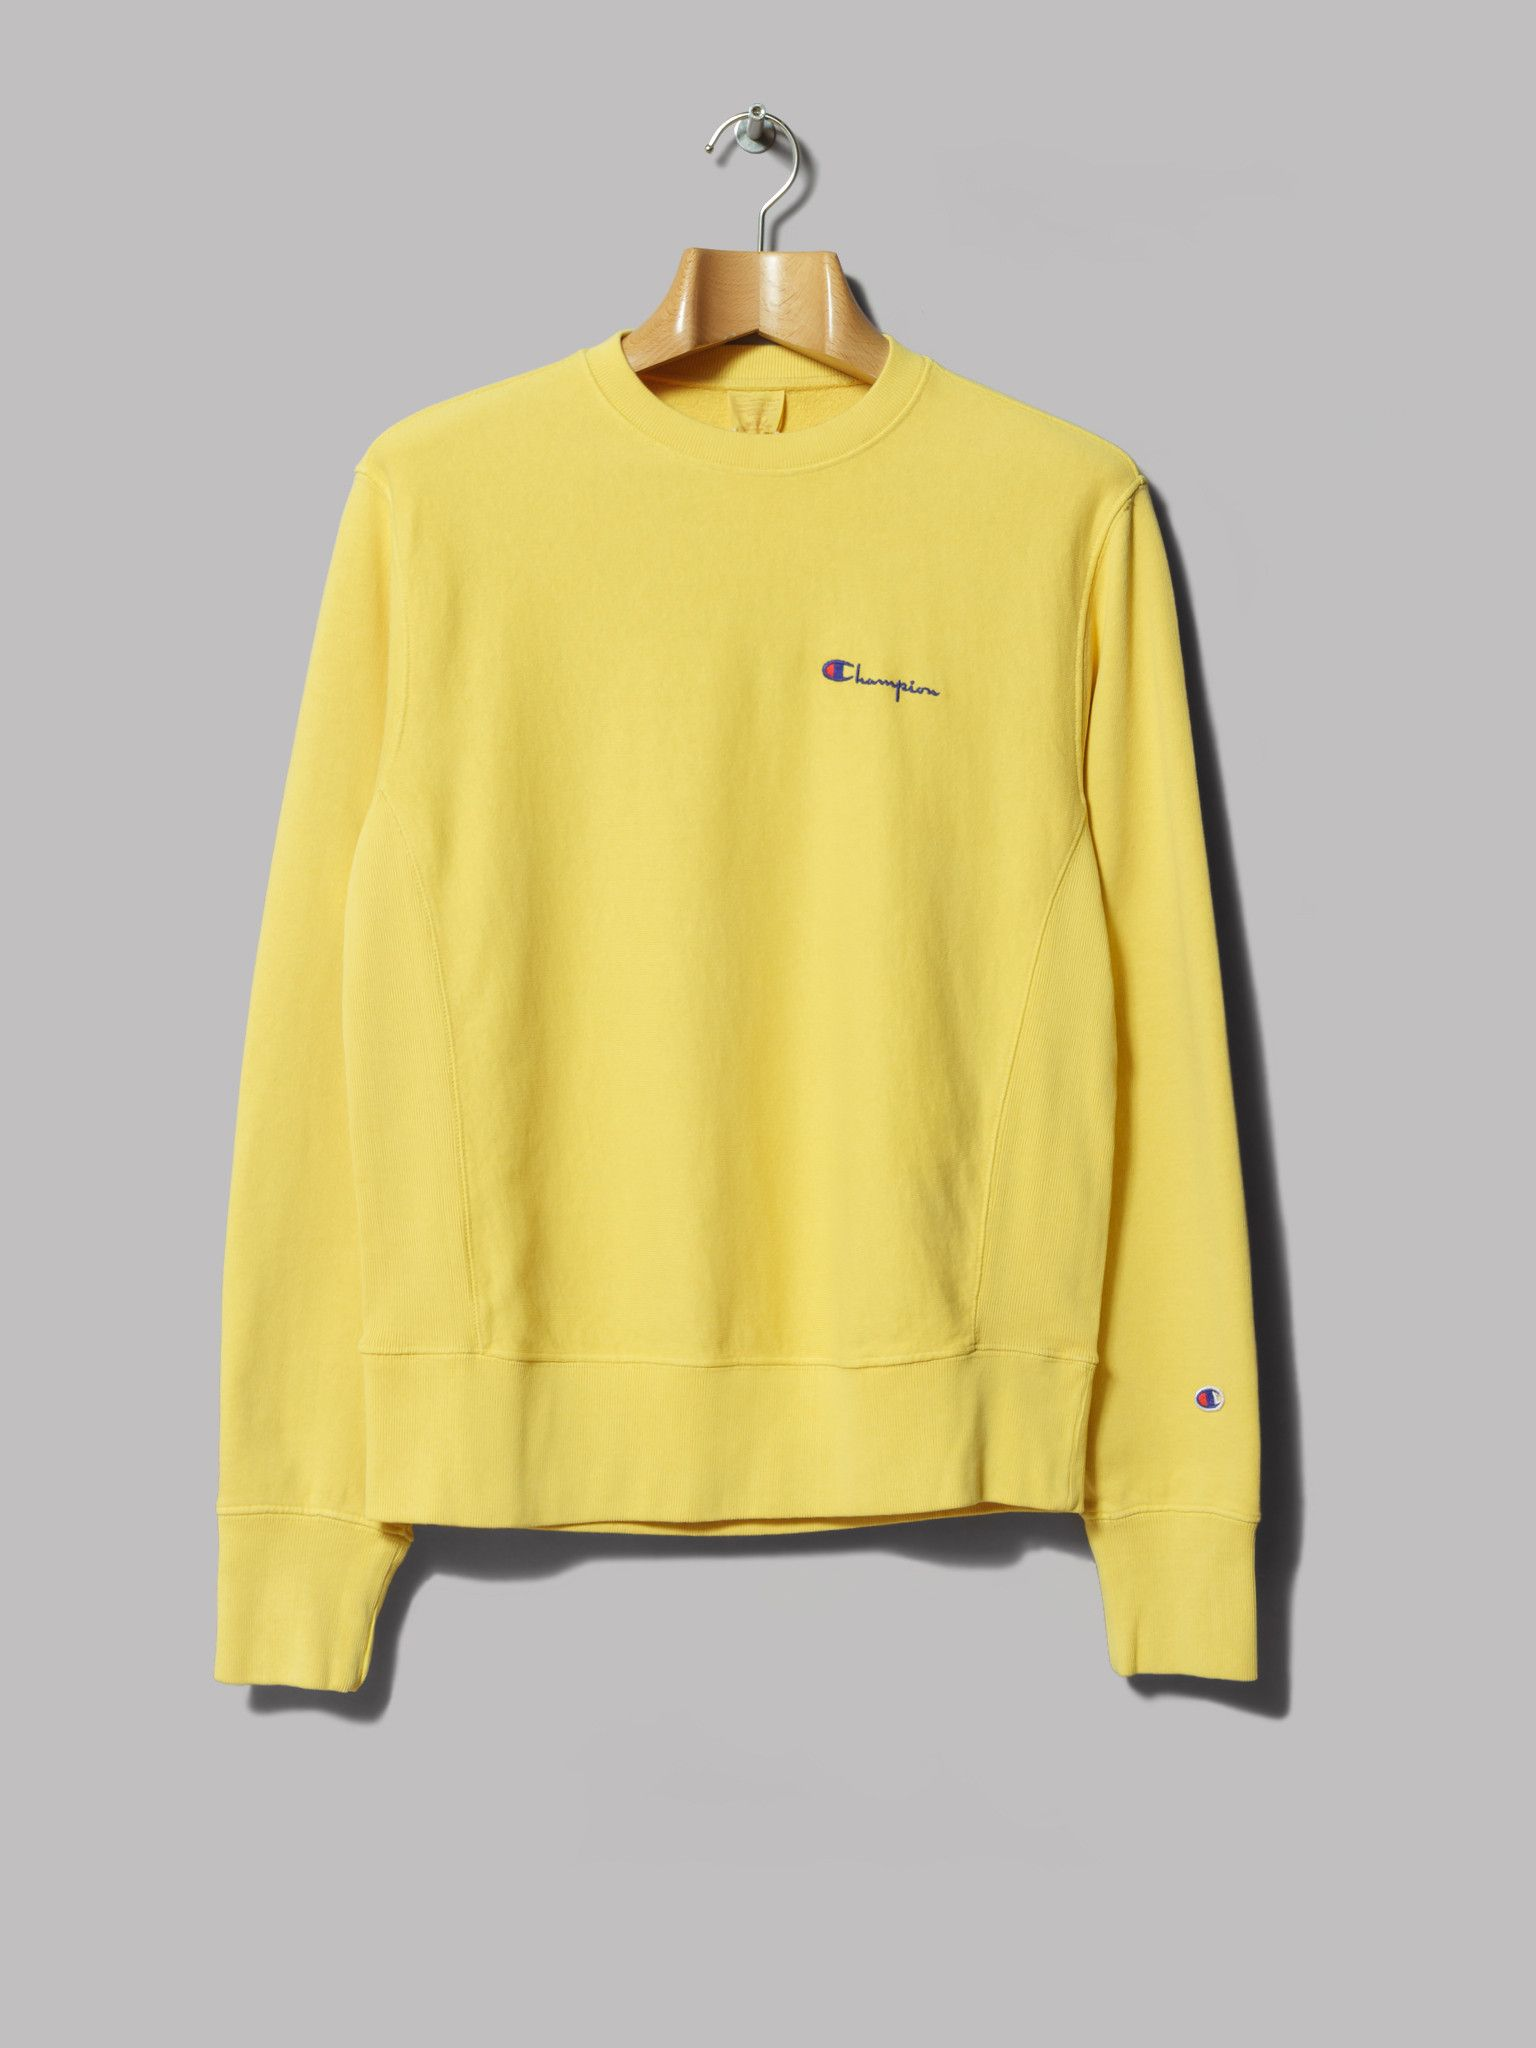 83727b0df0cb Champion Reverse Weave Crewneck Sweatshirt (Yellow)